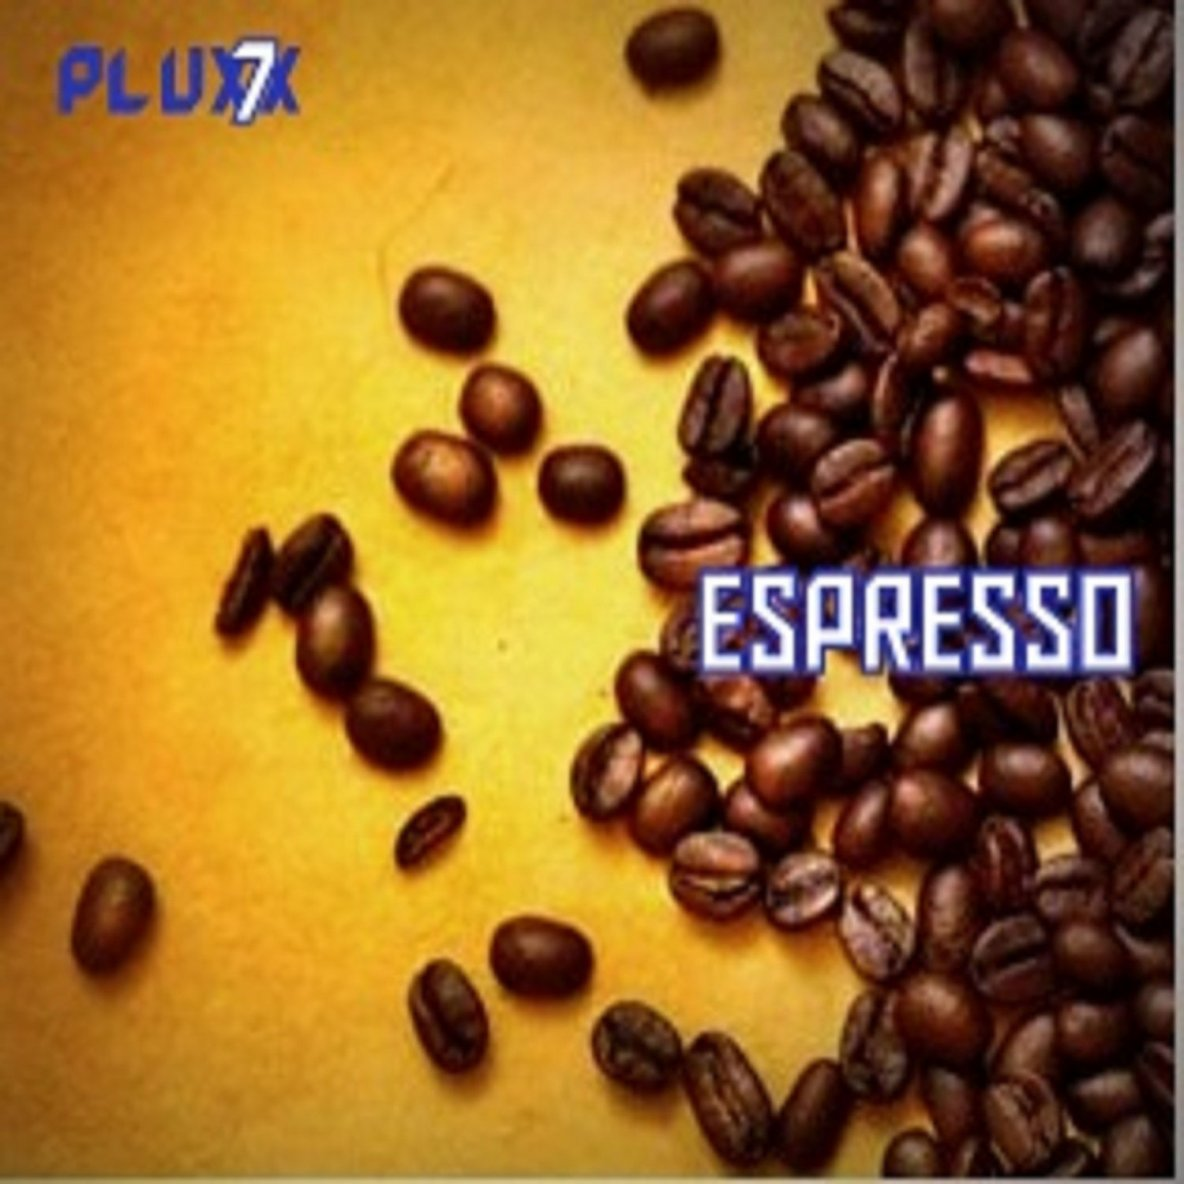 "Preview, buy and download songs from the album Espresso - Single including ""Espresso"". Buy the album for USD 0.99. Songs start at USD 0.99."